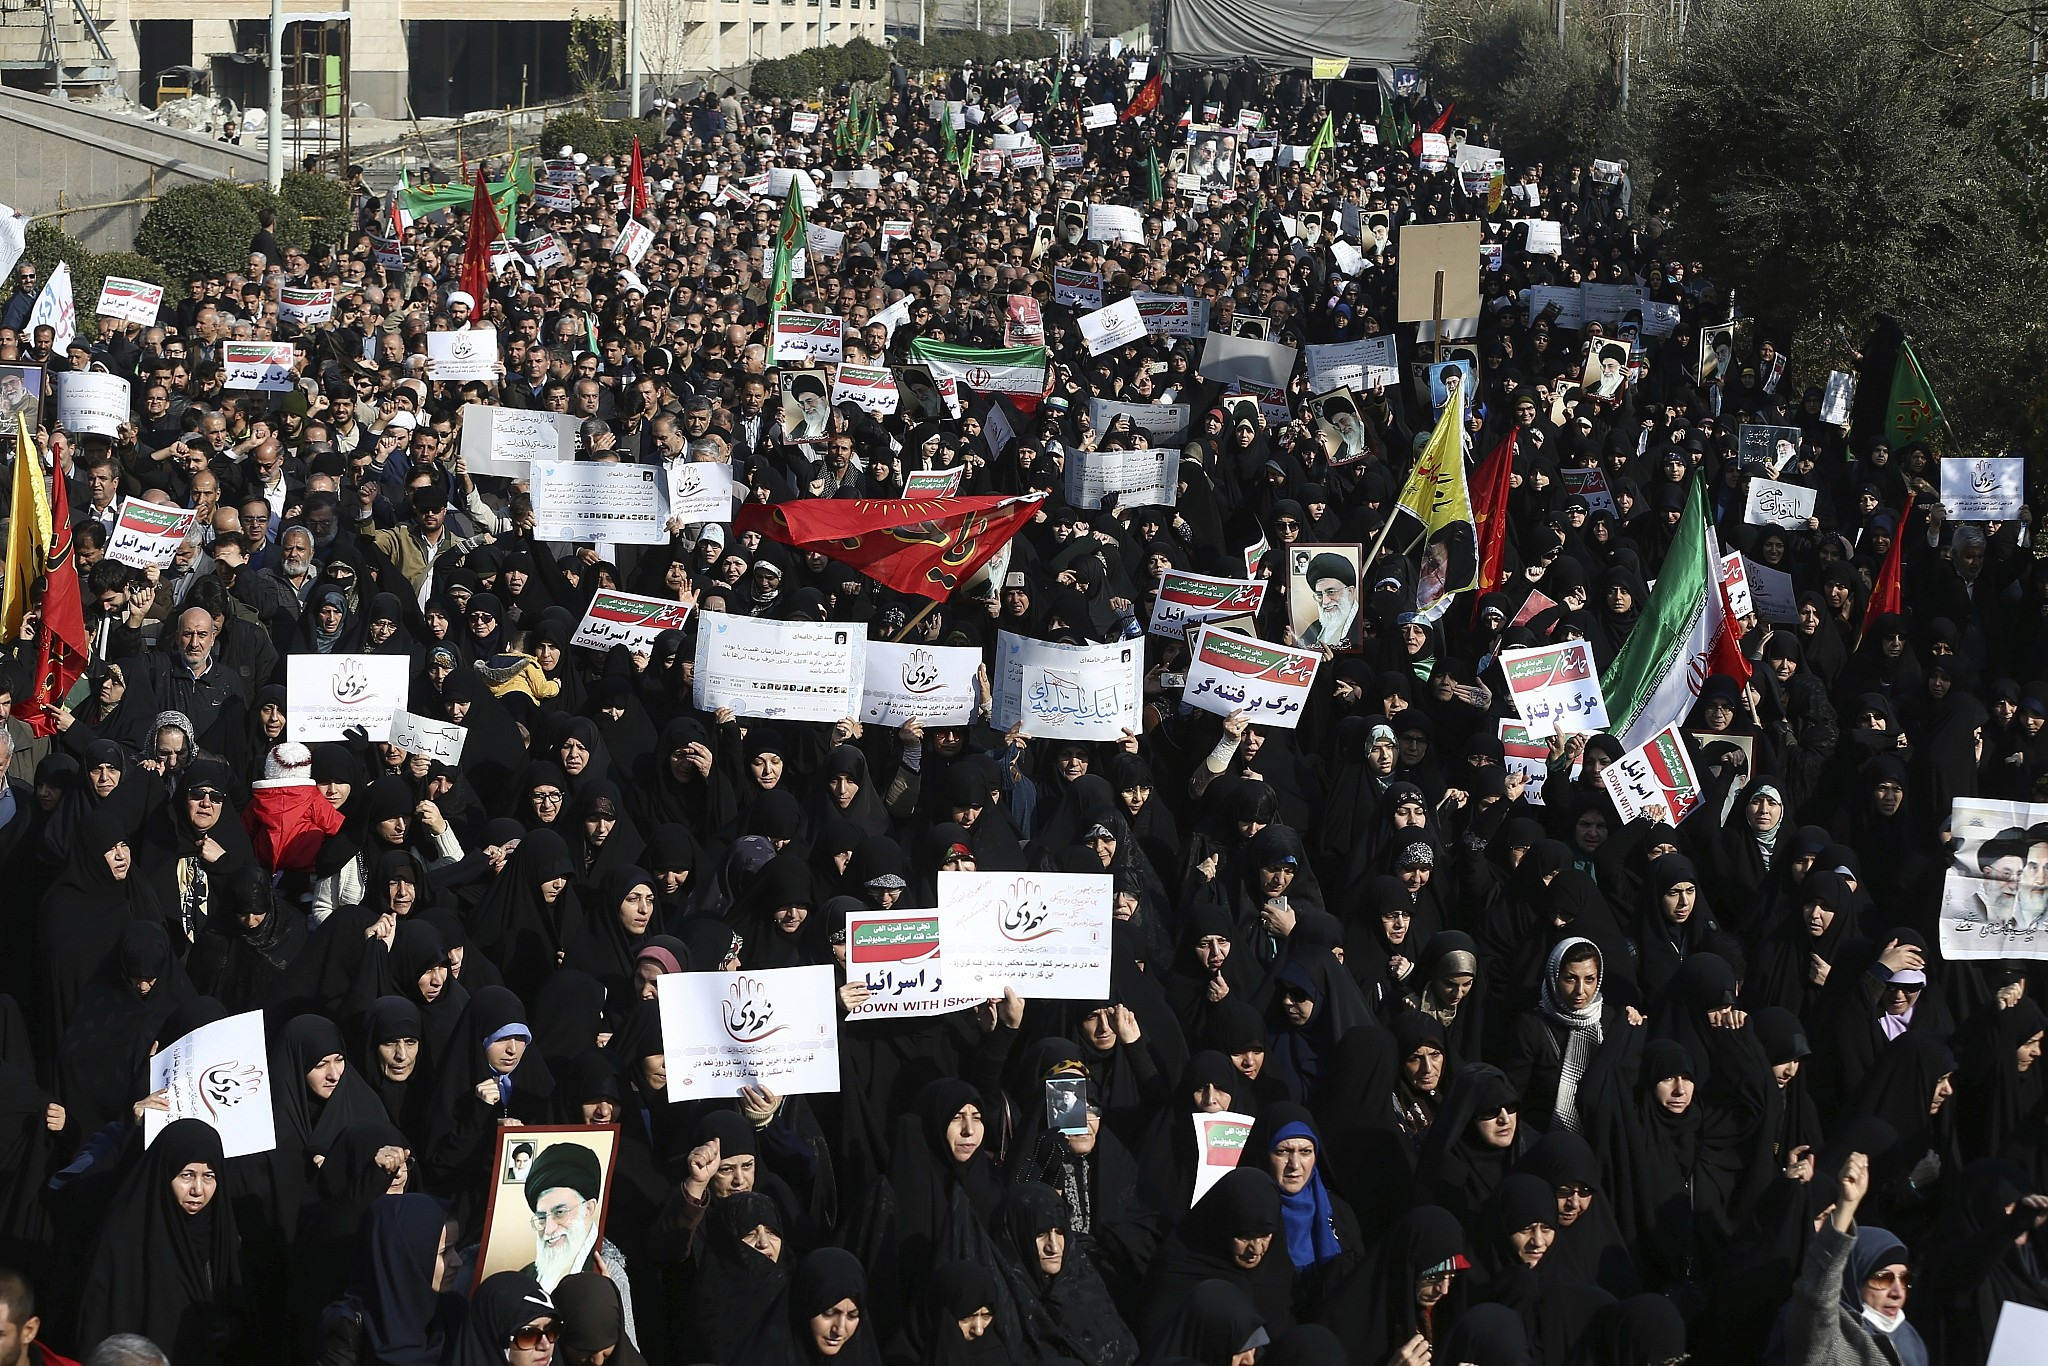 Thousands protest in Iran in anti-government demonstrations